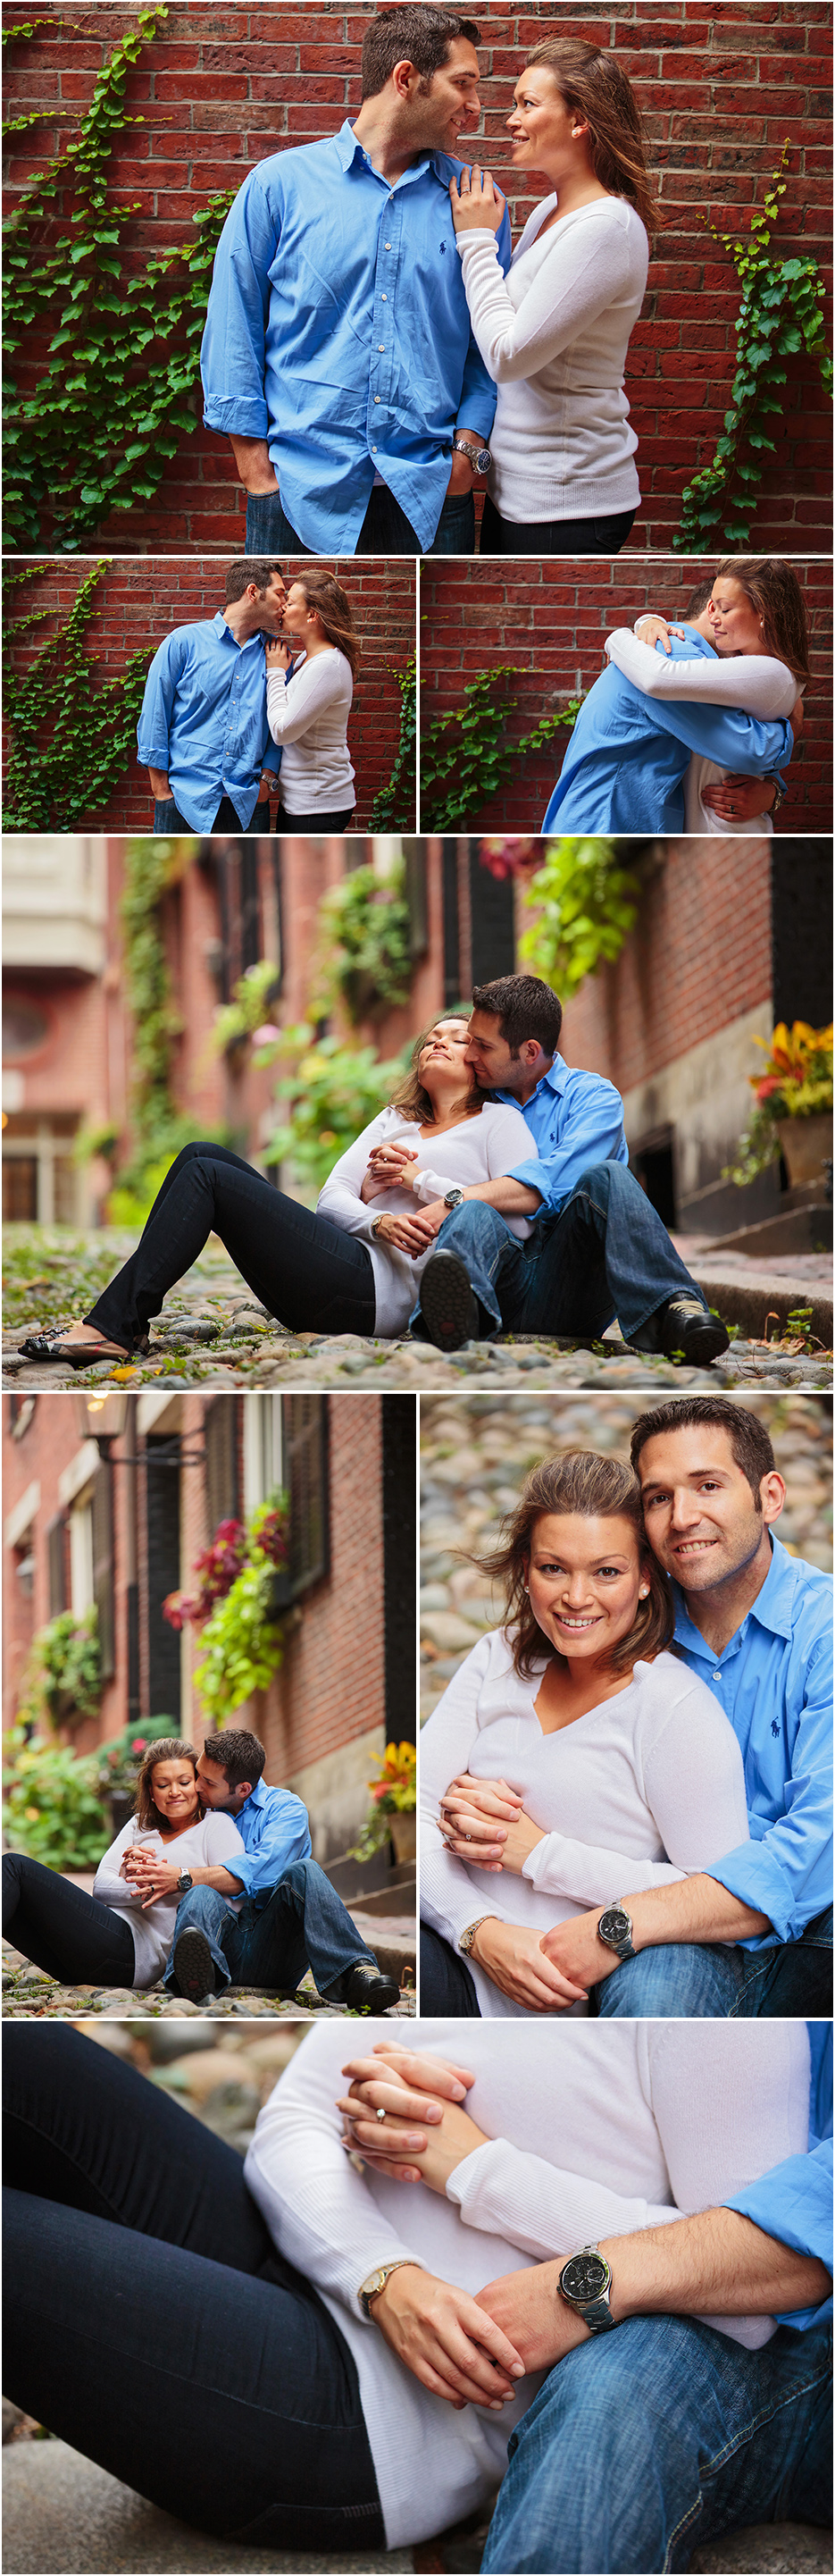 BEACON HILL ENGAGEMENT SESSION AND PHOTOS BY ROBERTO FARREN